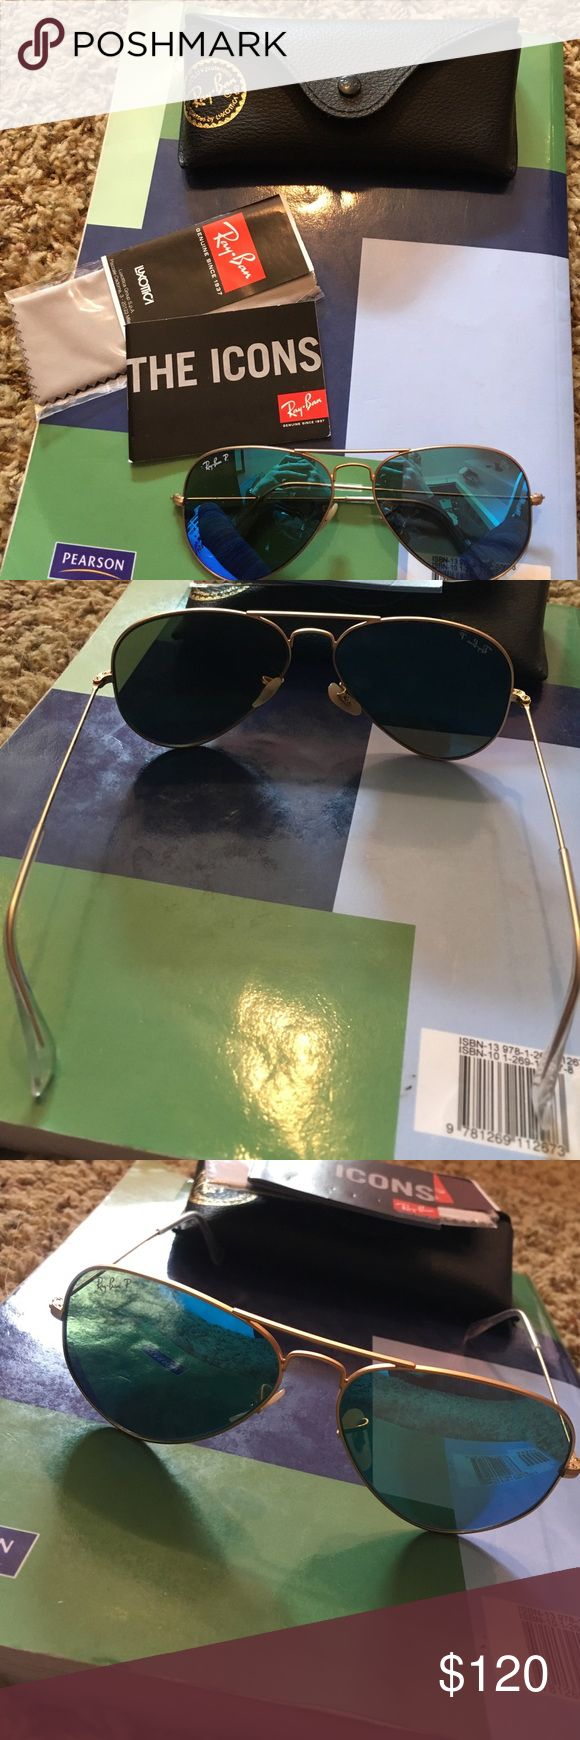 sell my ray ban sunglasses  17 Best ideas about Blue Ray Bans on Pinterest